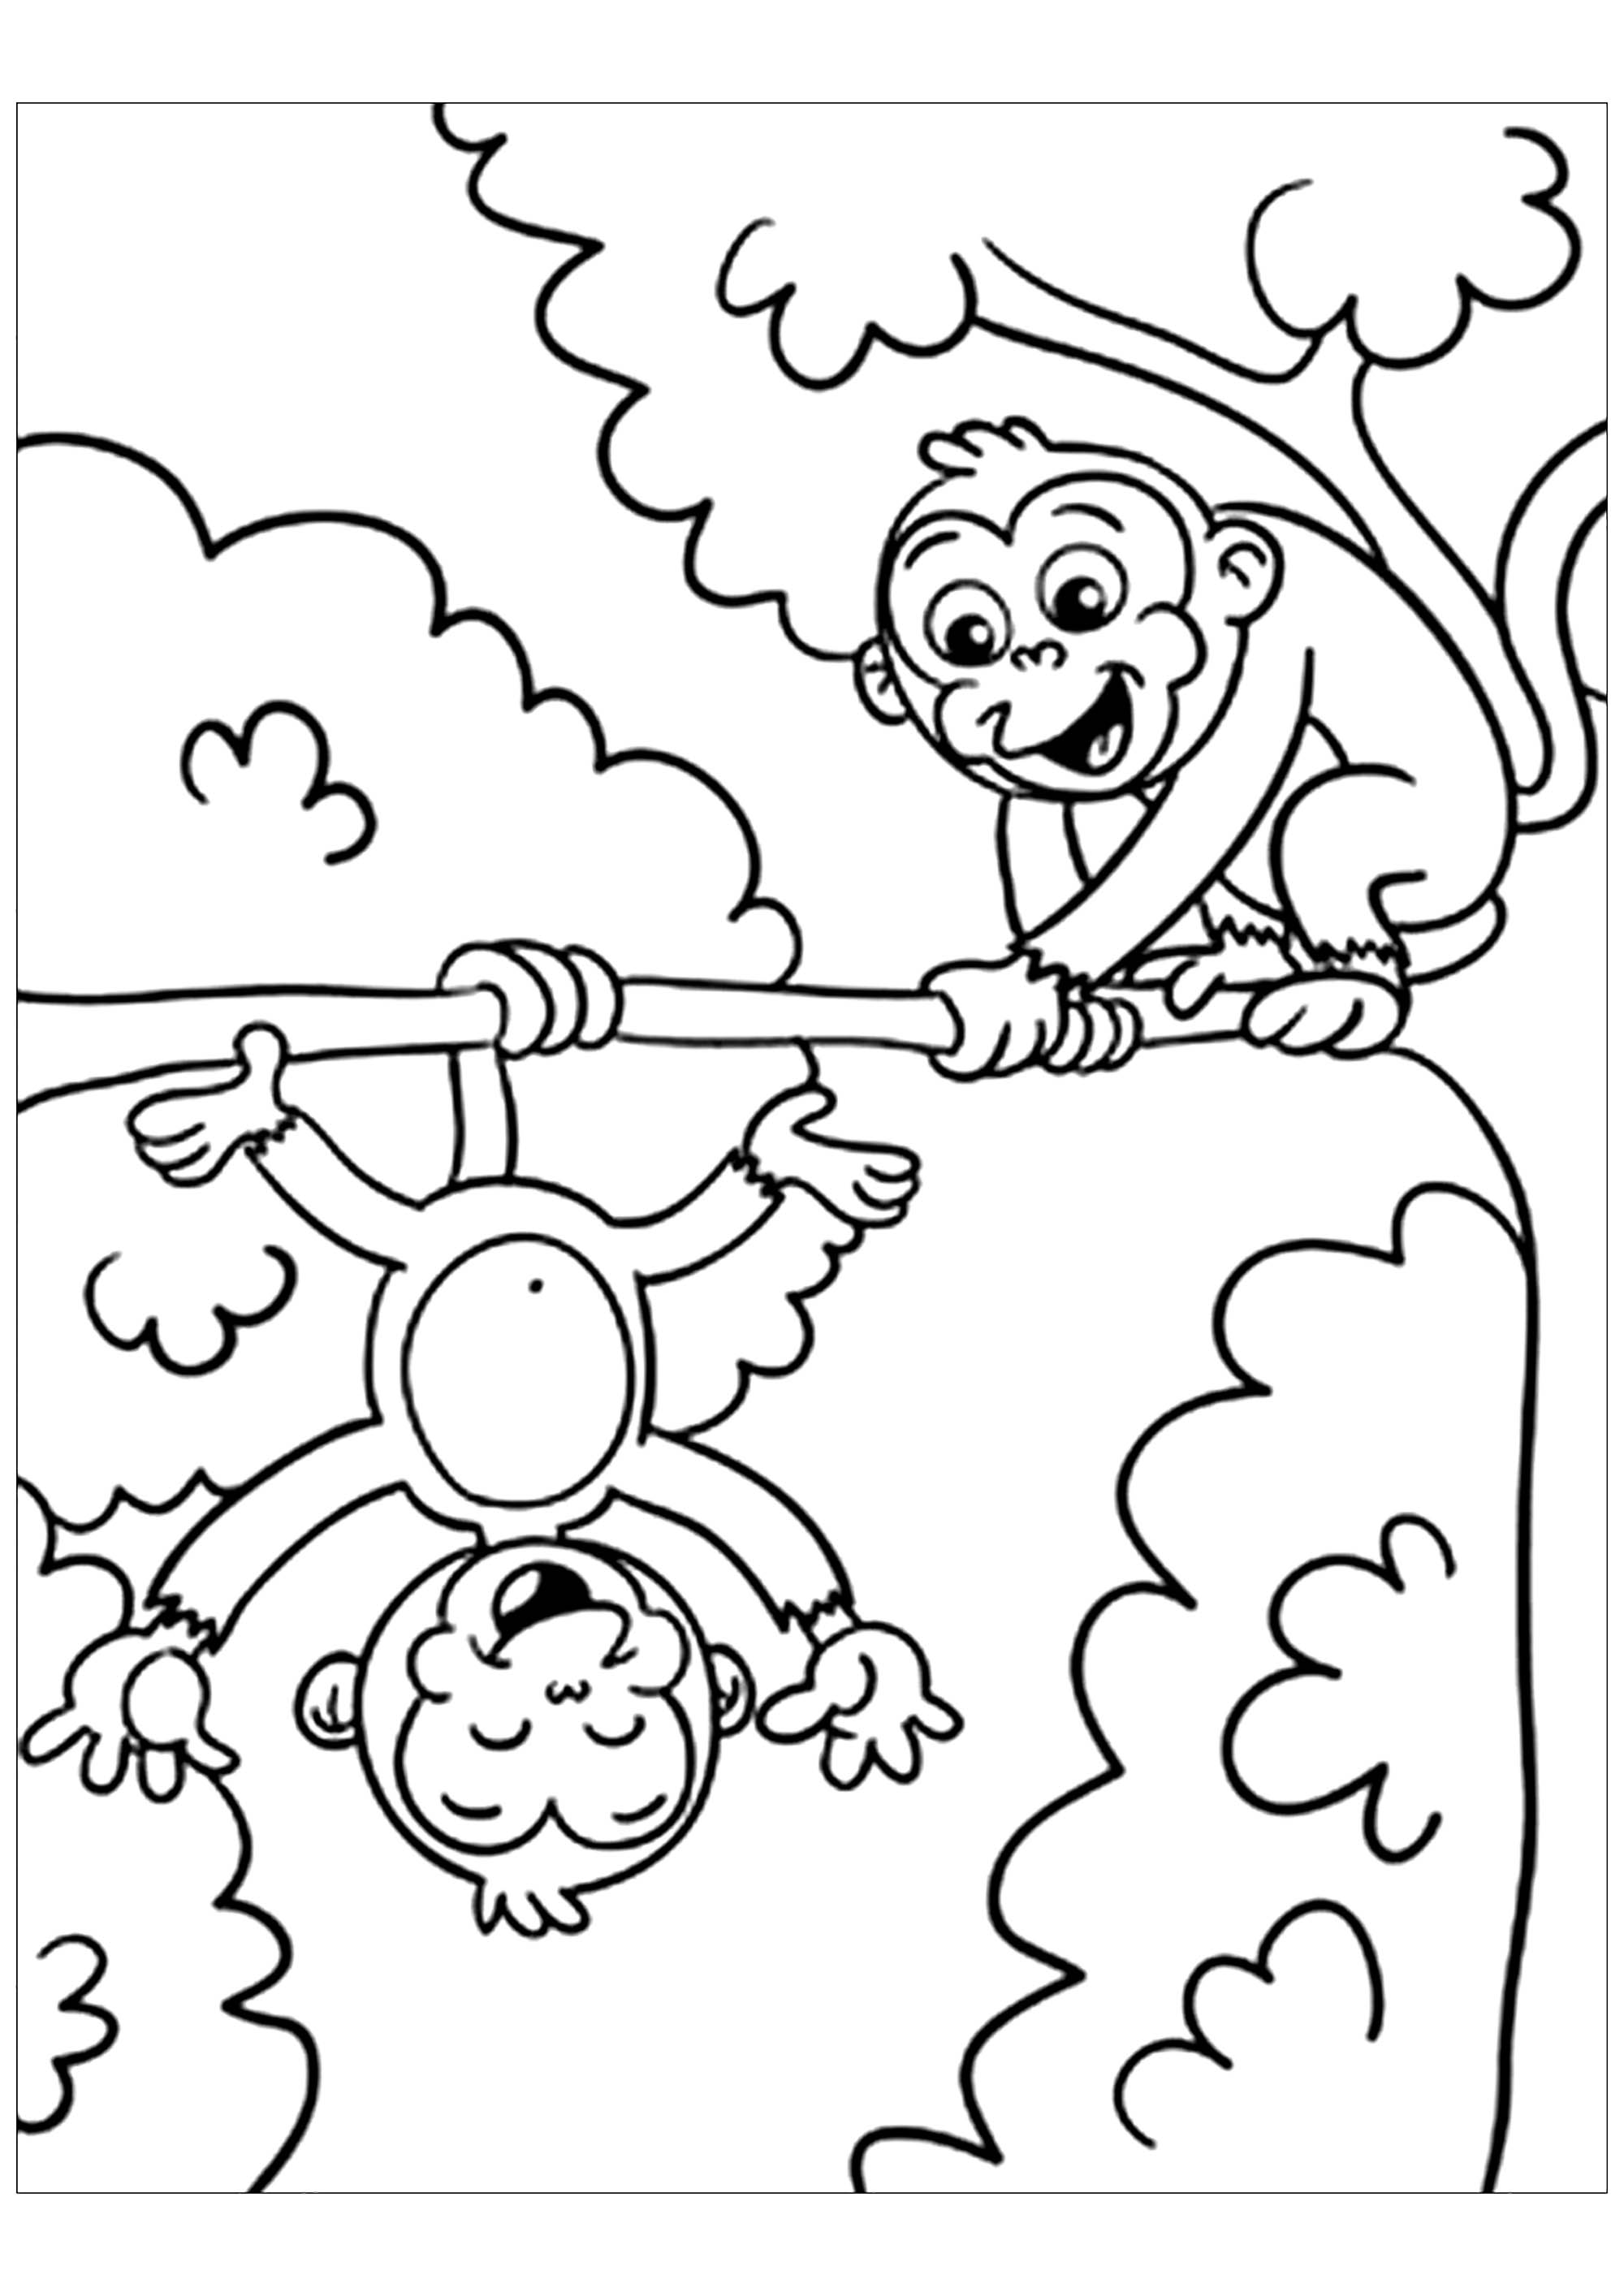 Monkeys To Print For Free Monkeys Kids Coloring Pages